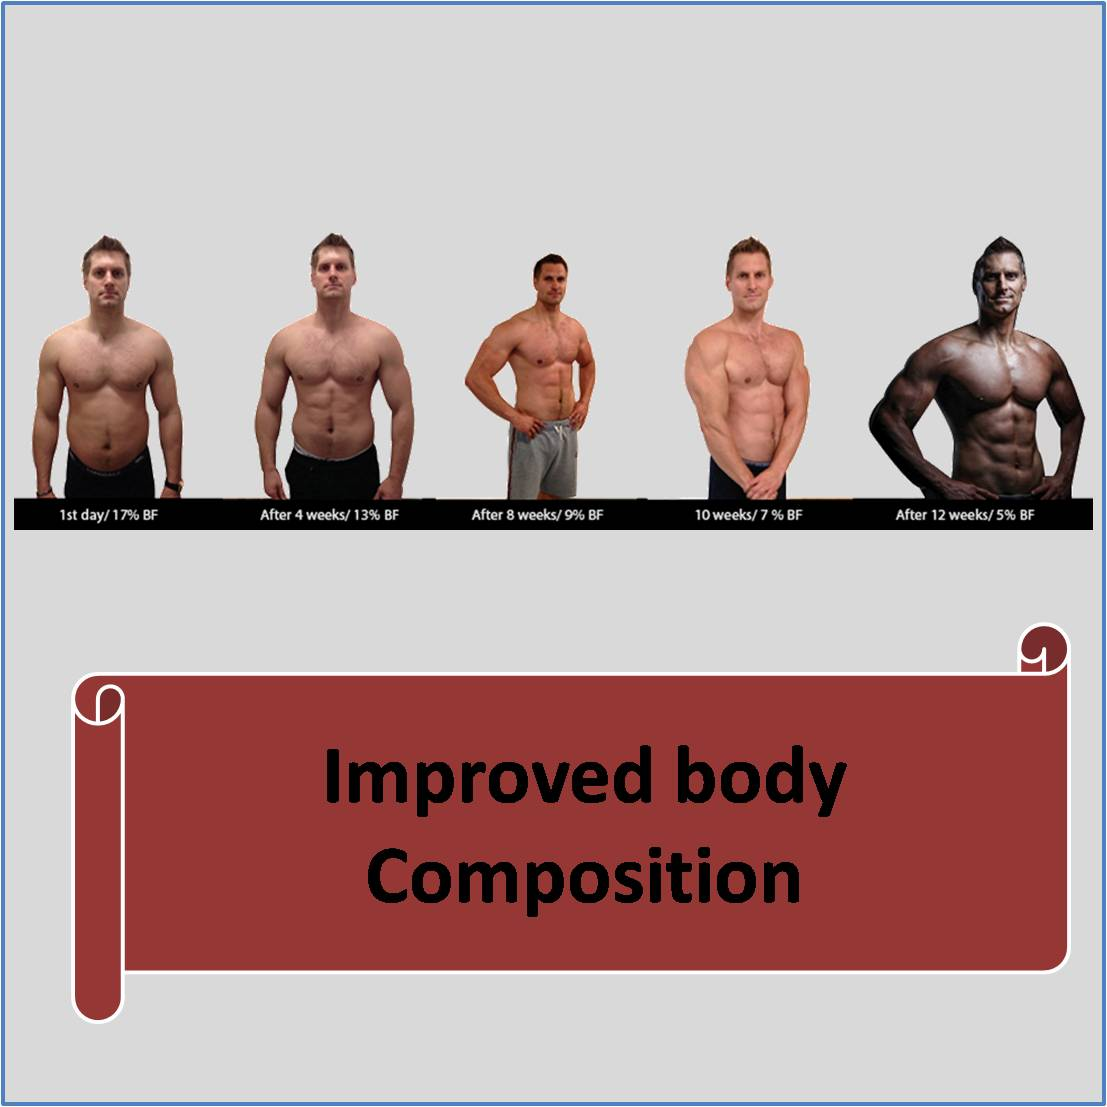 Improved body Composition